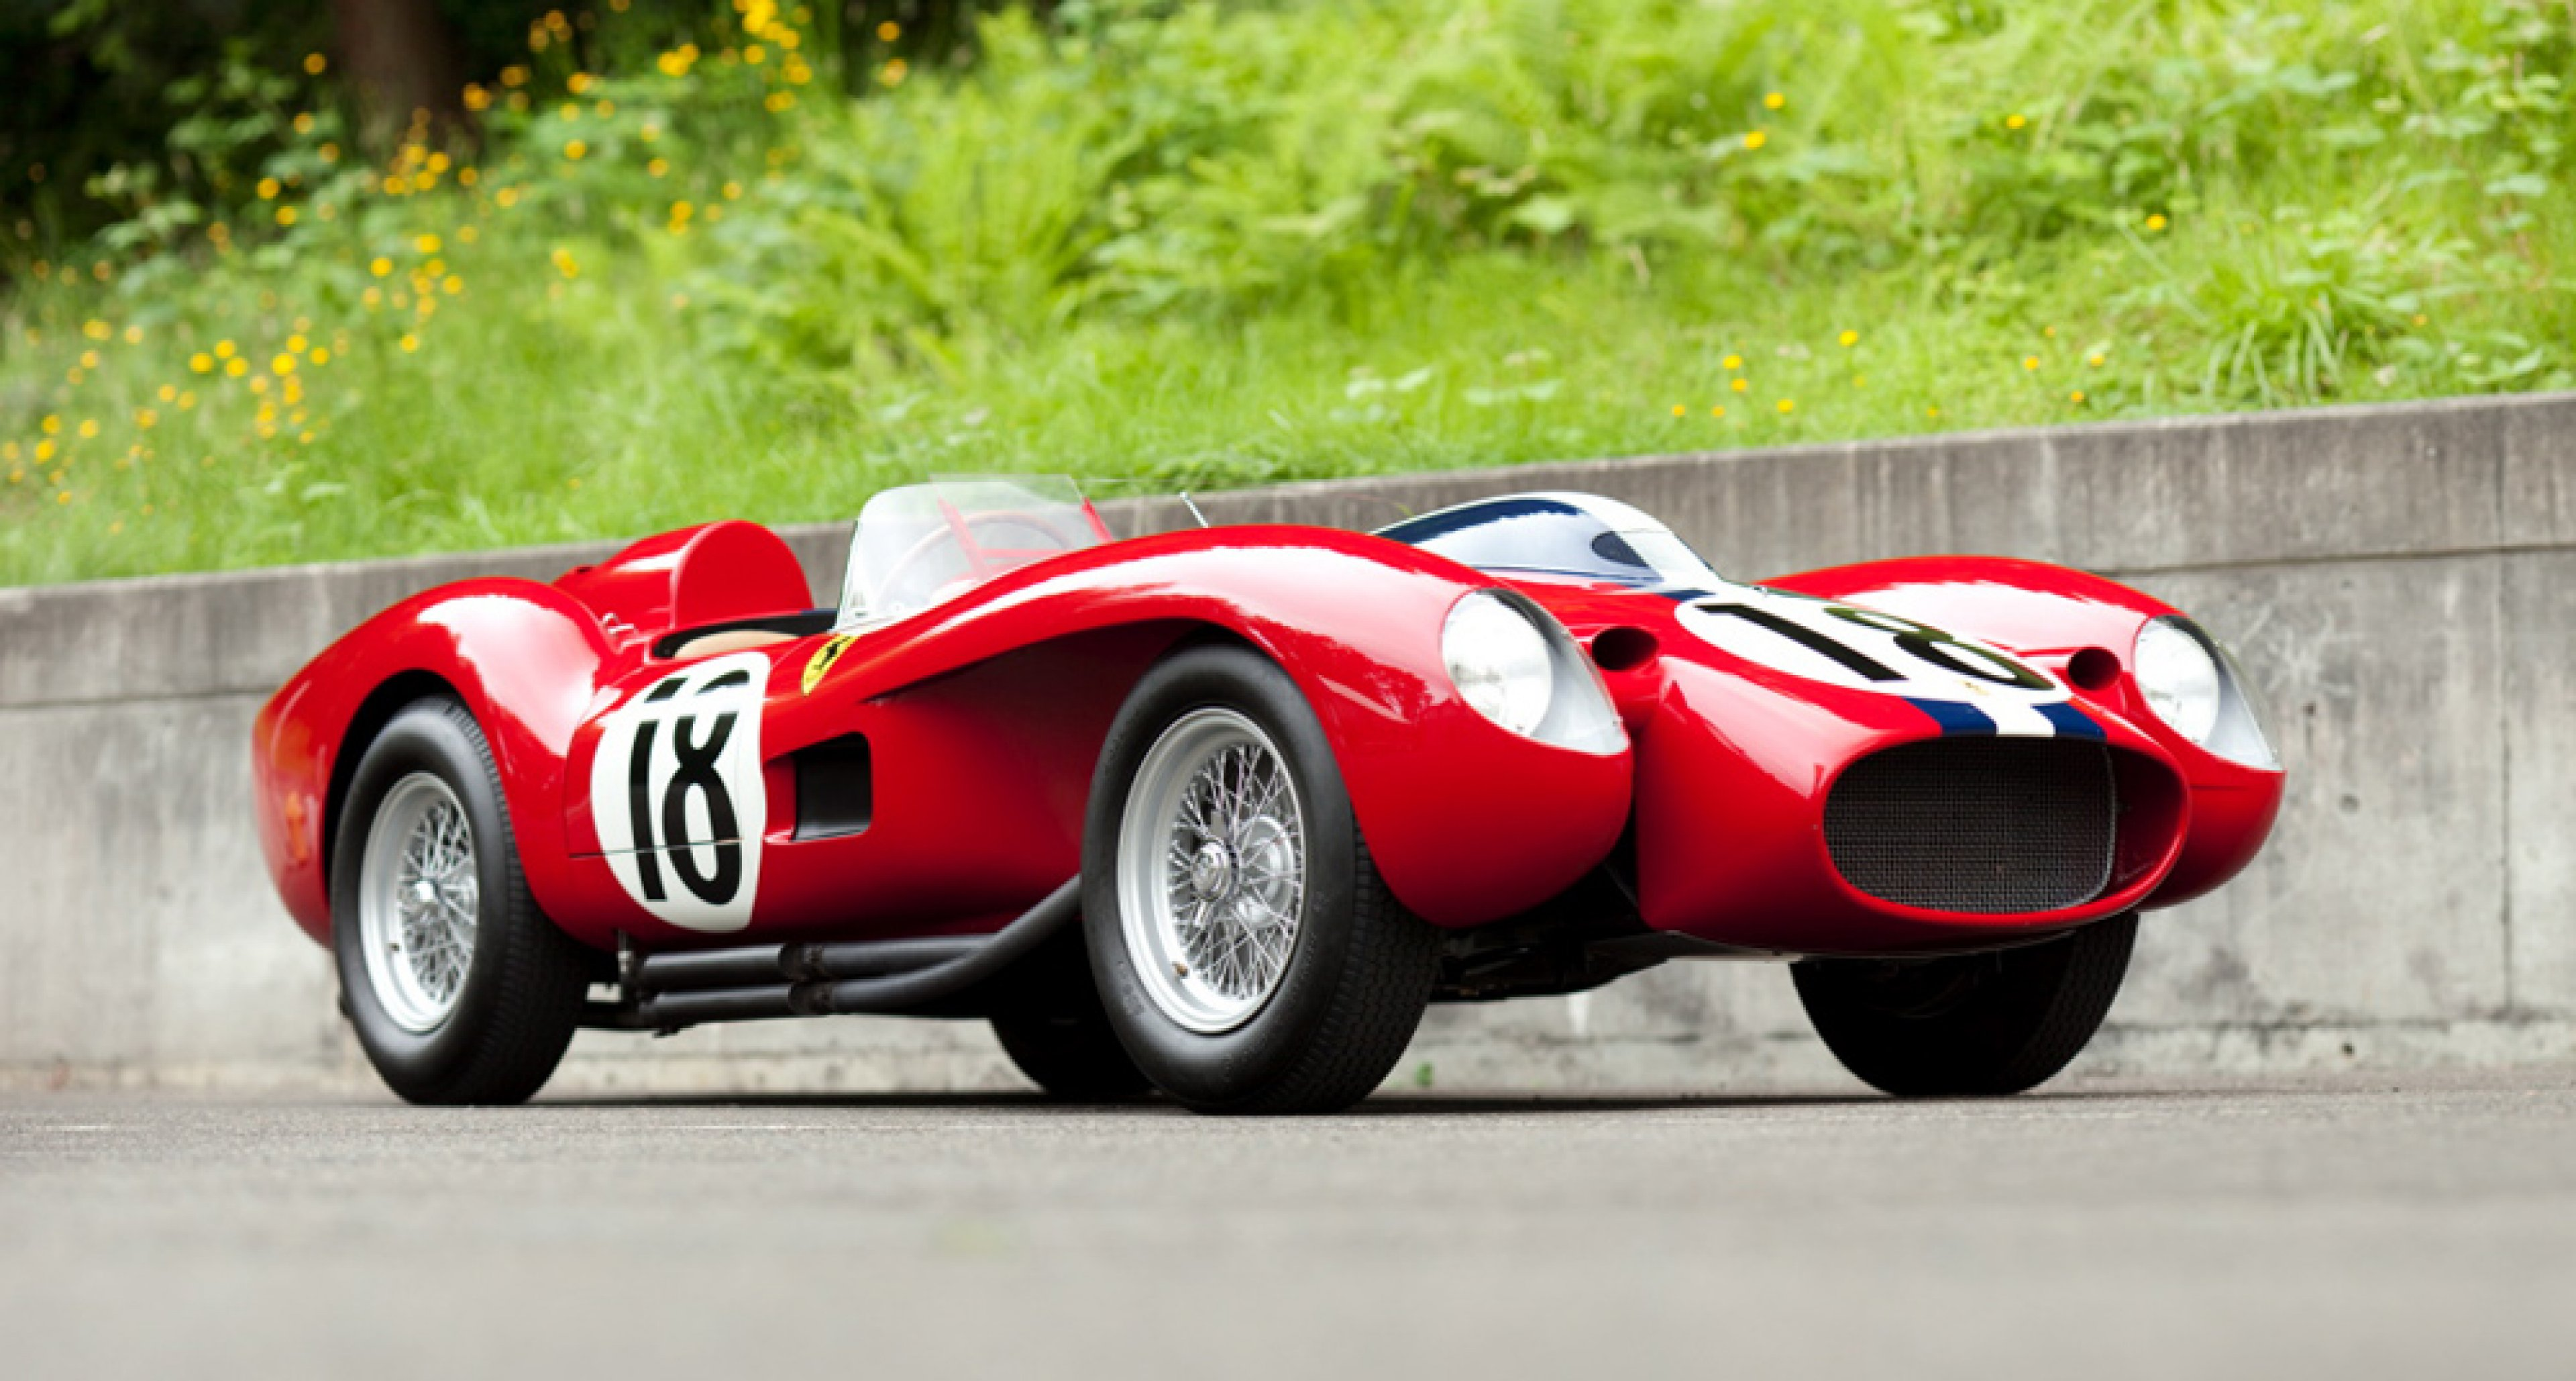 1957 Ferrari 250 Testa Rossa, sold by Gooding & Company in August 2011 for $ 17,182,830.